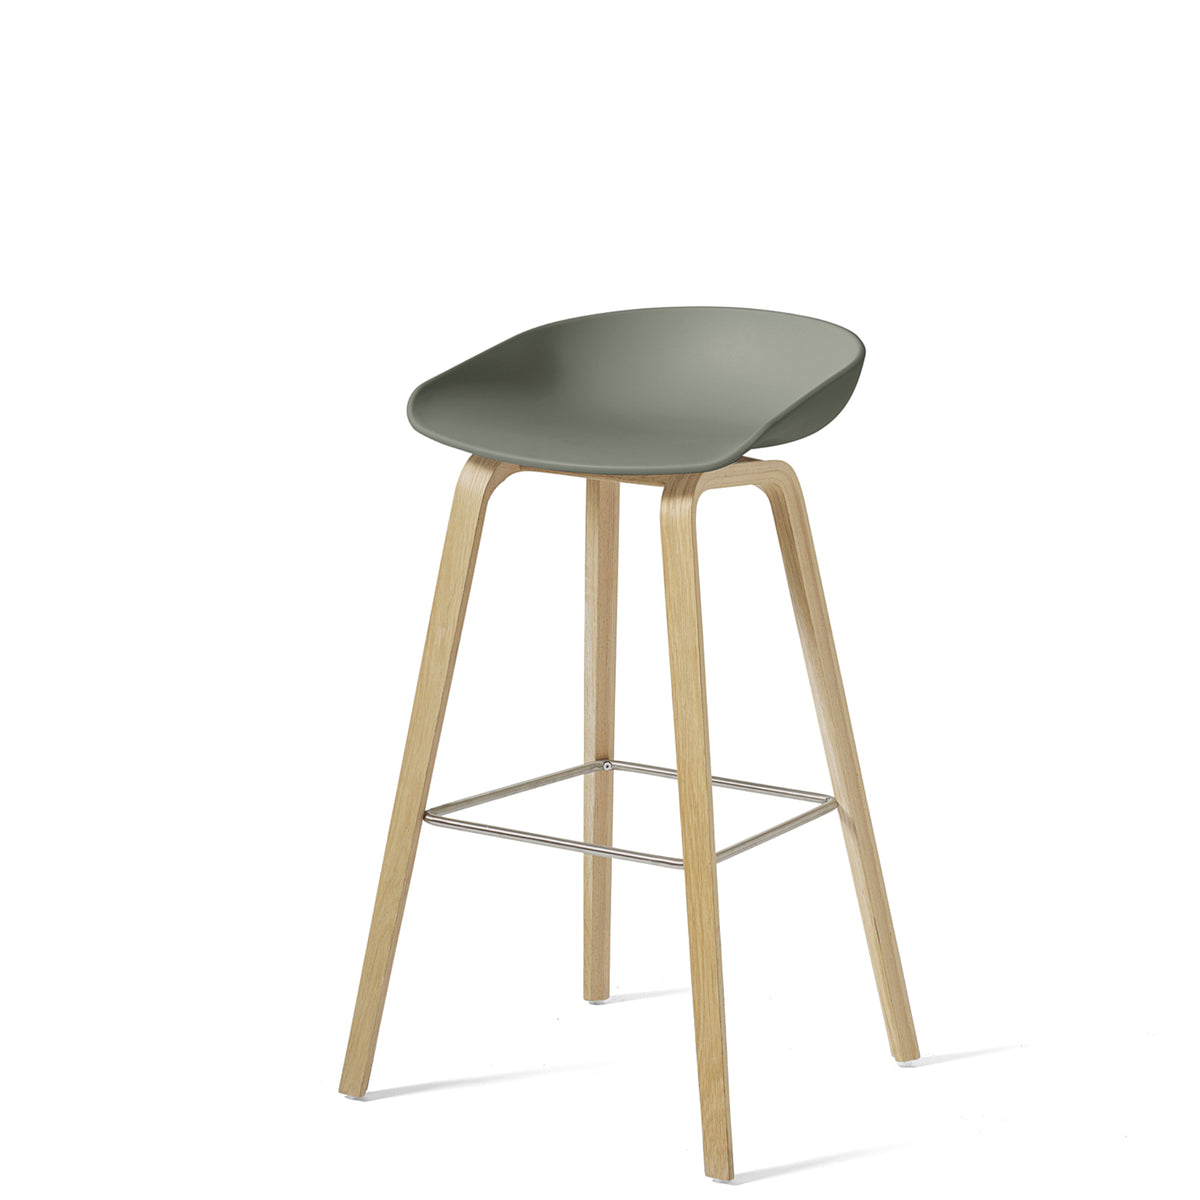 HAY About A Stool AAS32 850mm Dusty Green Matt Lacquered Oak Base